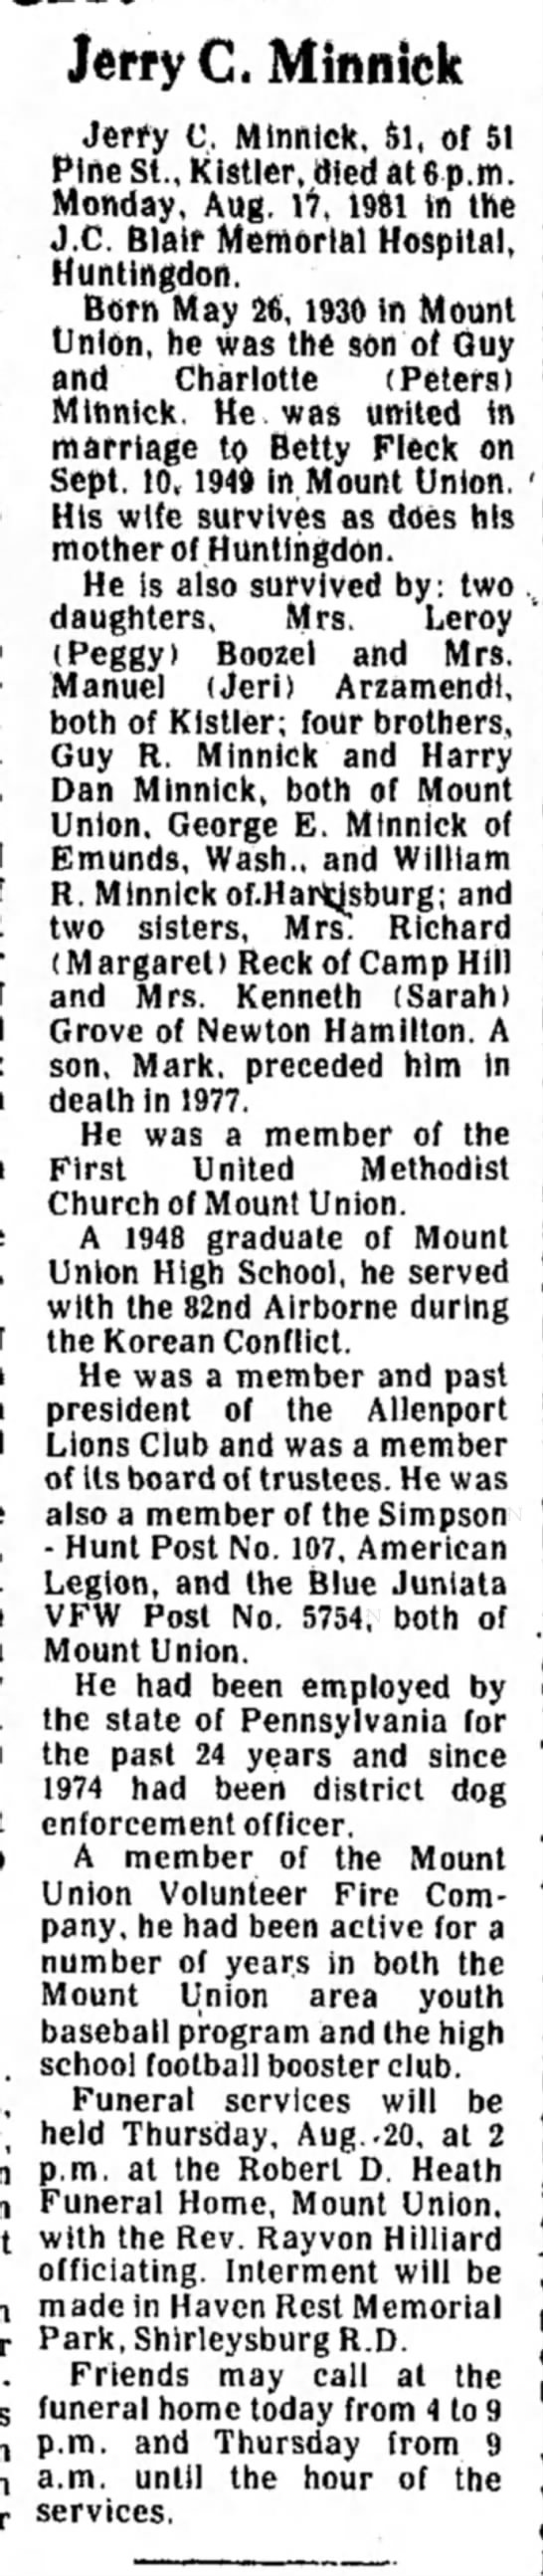 Jerry Minnick-Mt. Union-obit-TDN-page 2-19 August 1981